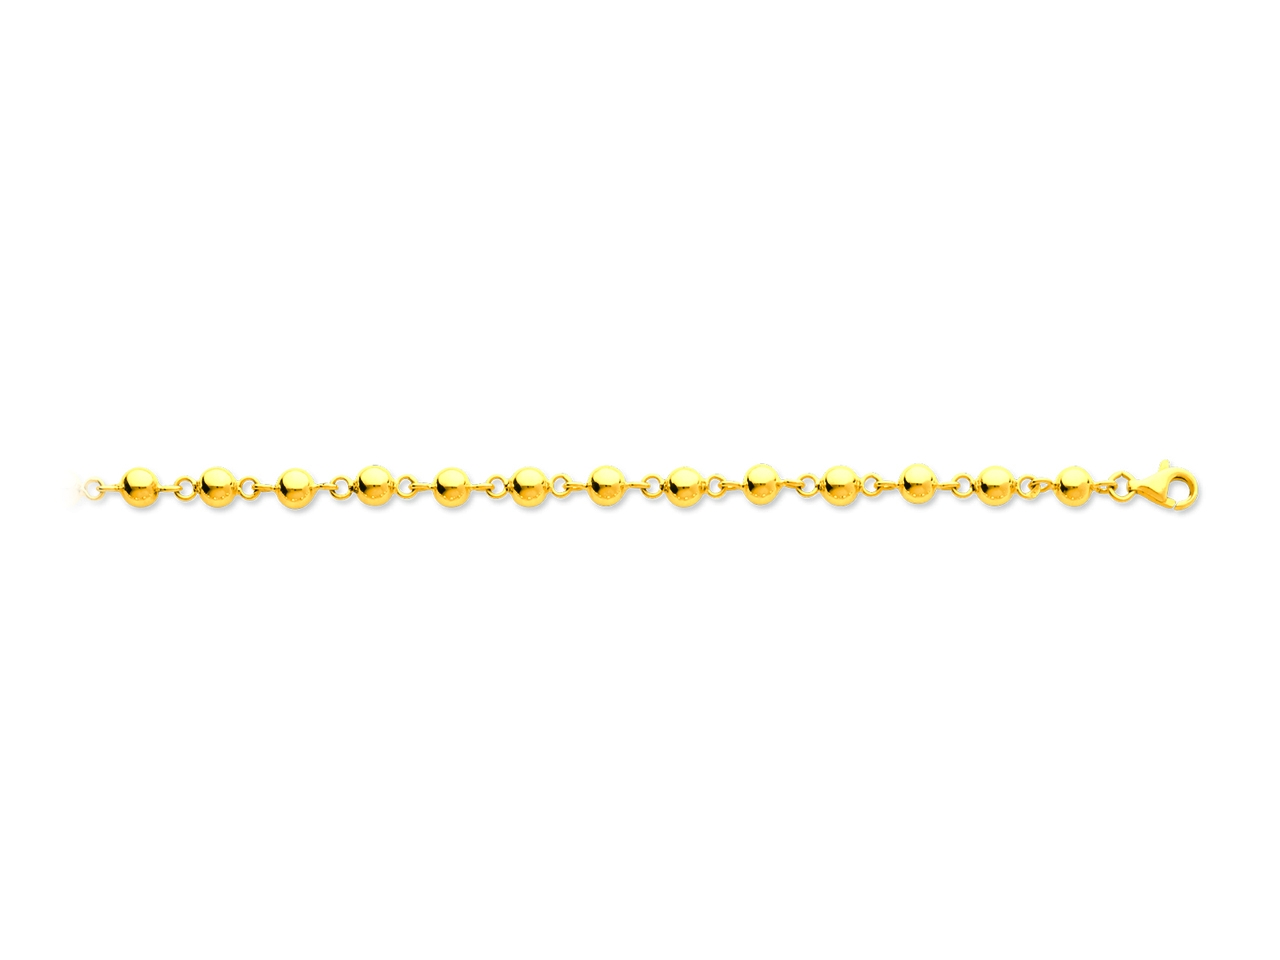 Collier boules marseillais, Or jaune 18k, 5 mm, 45 cm